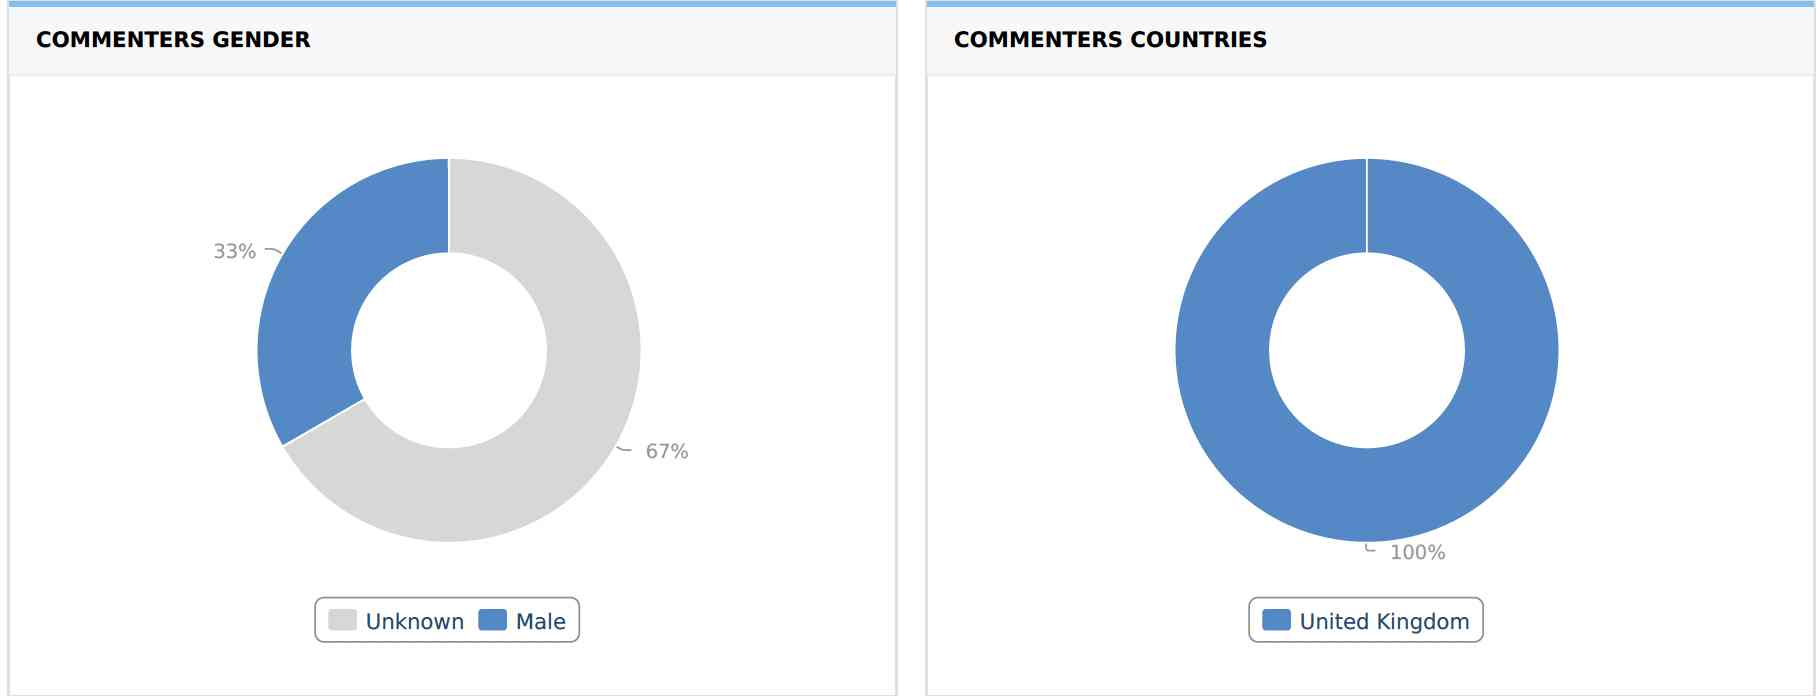 Commenters Gender and Countries